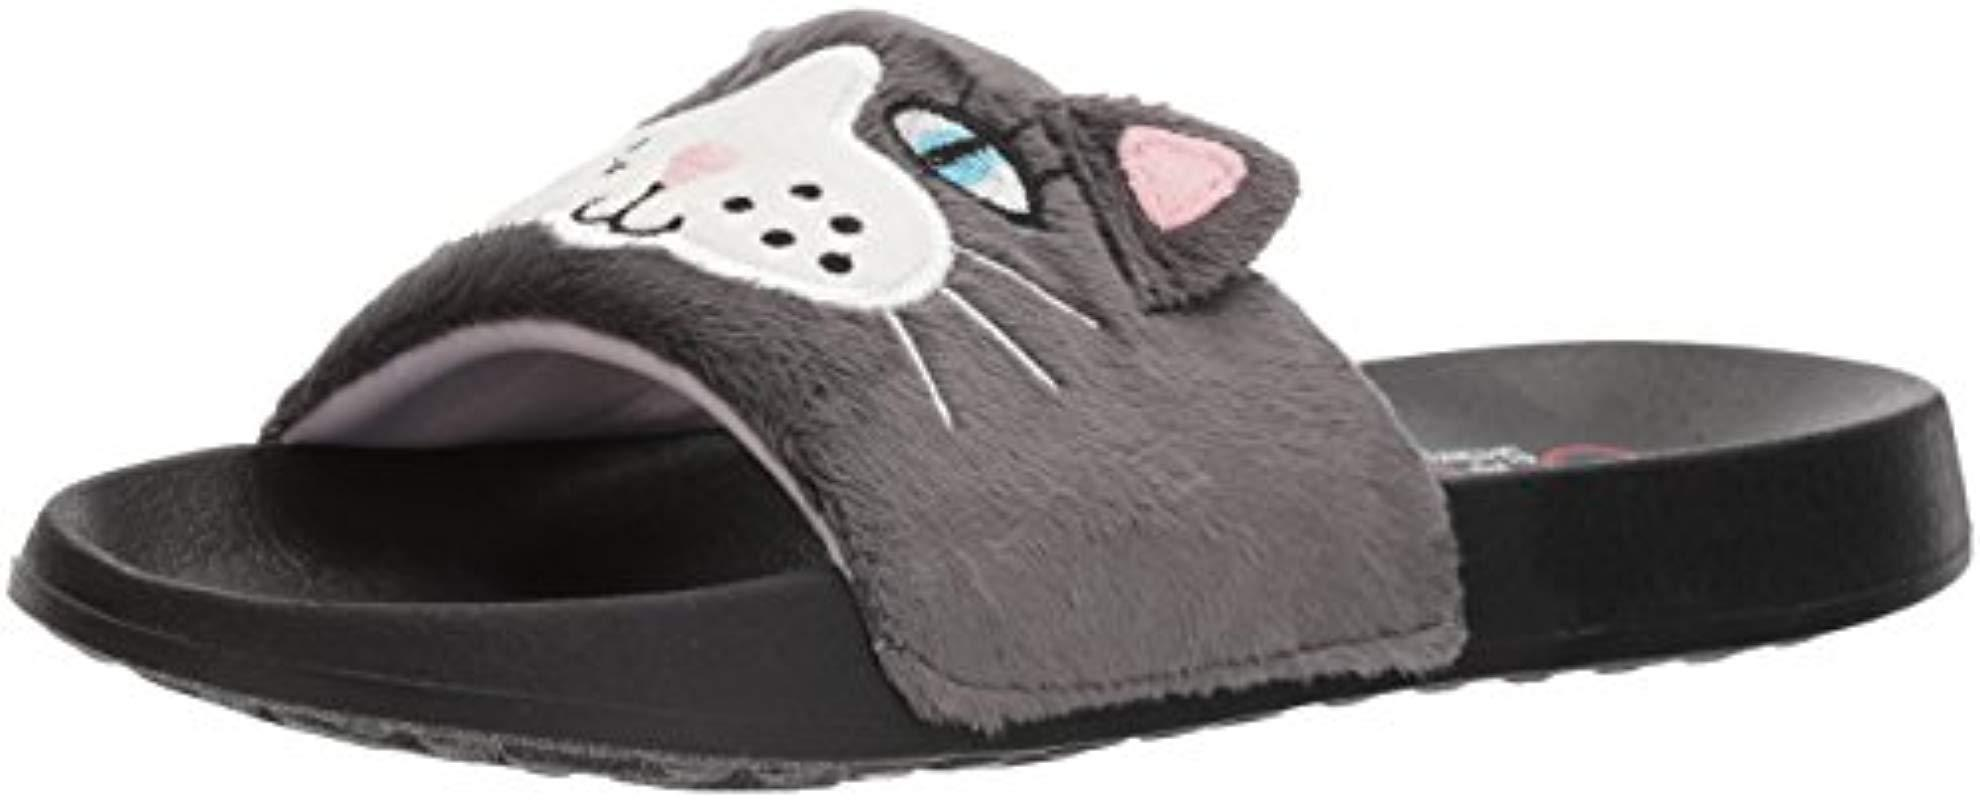 8e51f70bffc8 Lyst - Skechers Bobs 2nd Take-plush Animal Slide Sandal in Gray ...